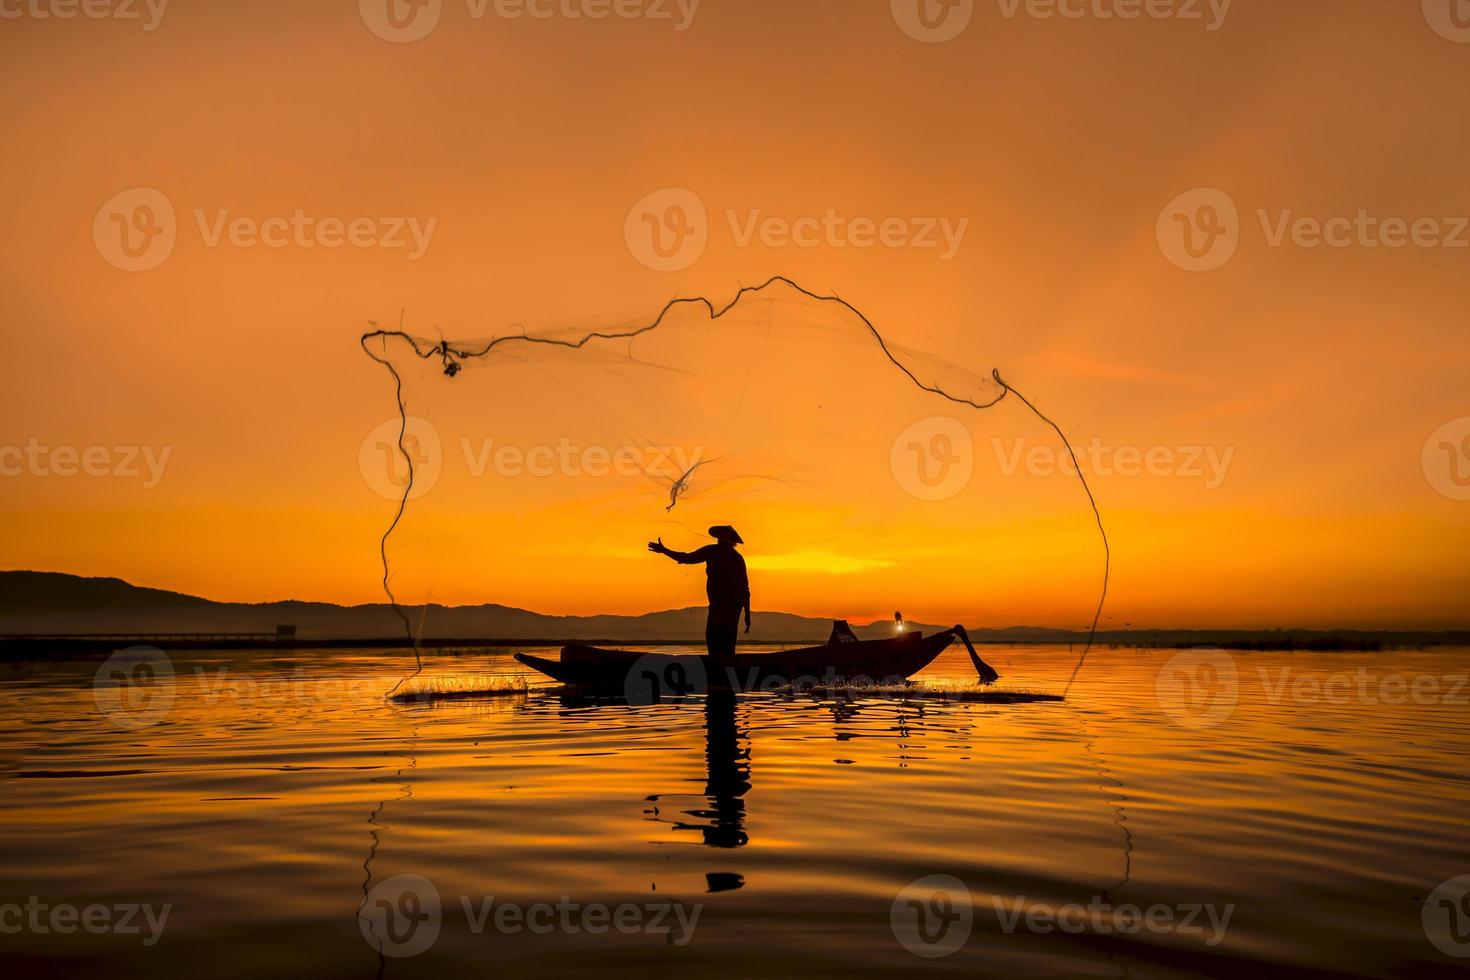 Fisherman of Bangpra Lake in action when fishing, Thailand. photo